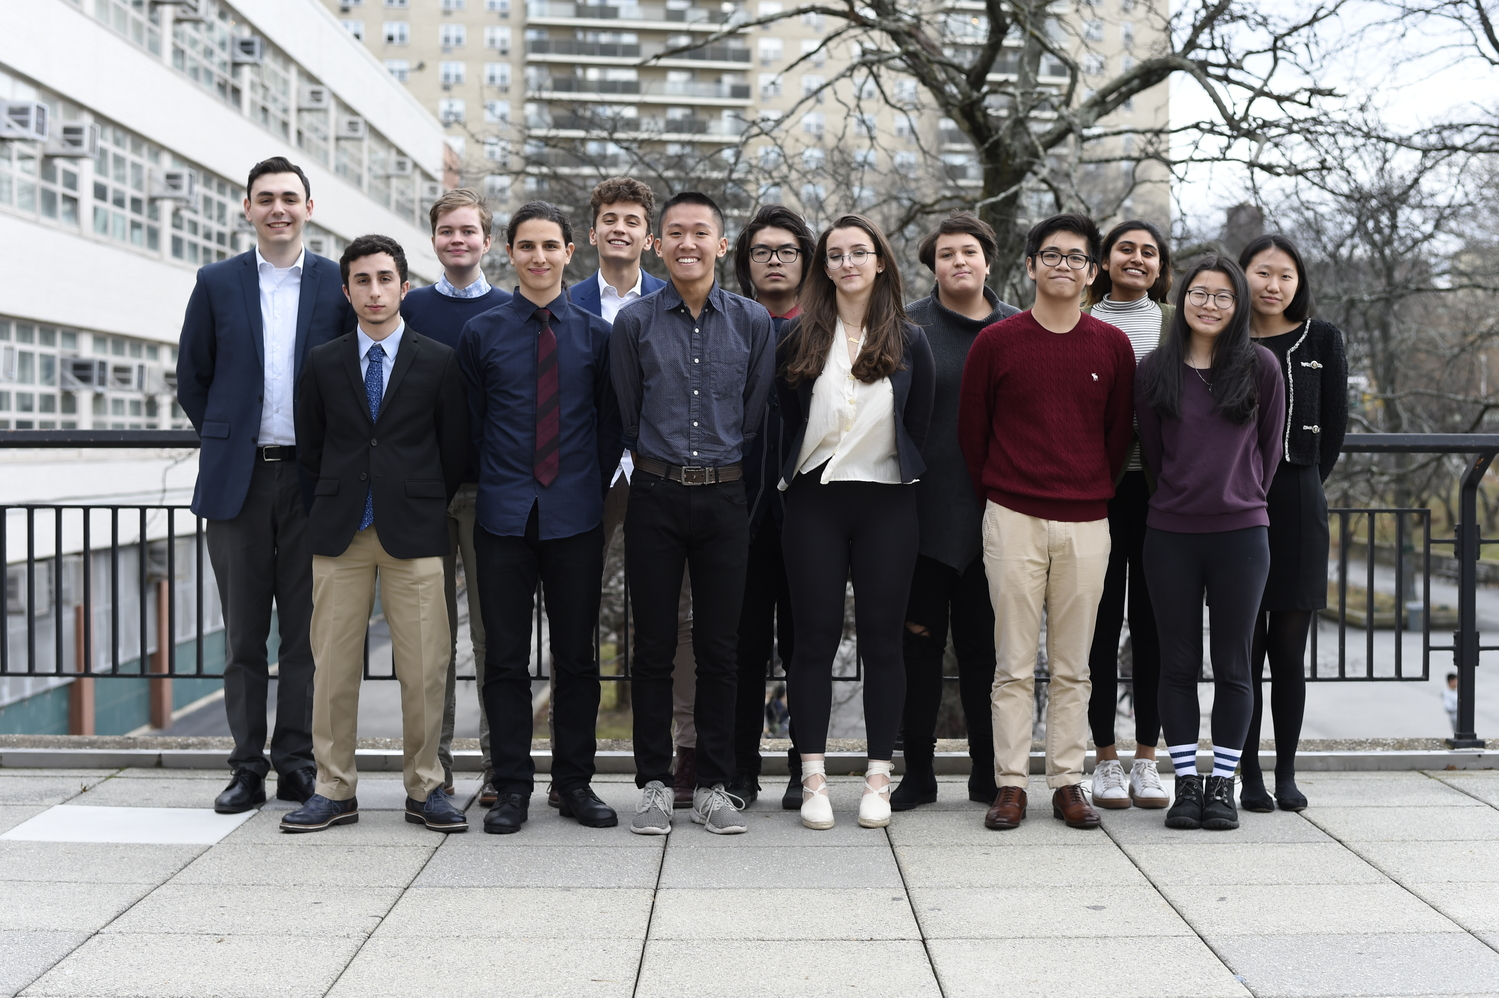 Regeneron Scholars and Semi-Finalists (from left to right): Nathan Felmus '19, Daniel Brous '19, Eli Zerof '19, Leon Ahronian '19, Joseph Doraid '19, Alex Chen '19, William Chen '19, Chloe Frajmund '19, Olga Khmelnitsky '19, Kevin Liu '19, Anika Kalra '19, Annie Liu '19, and Yea Won Lee '19.